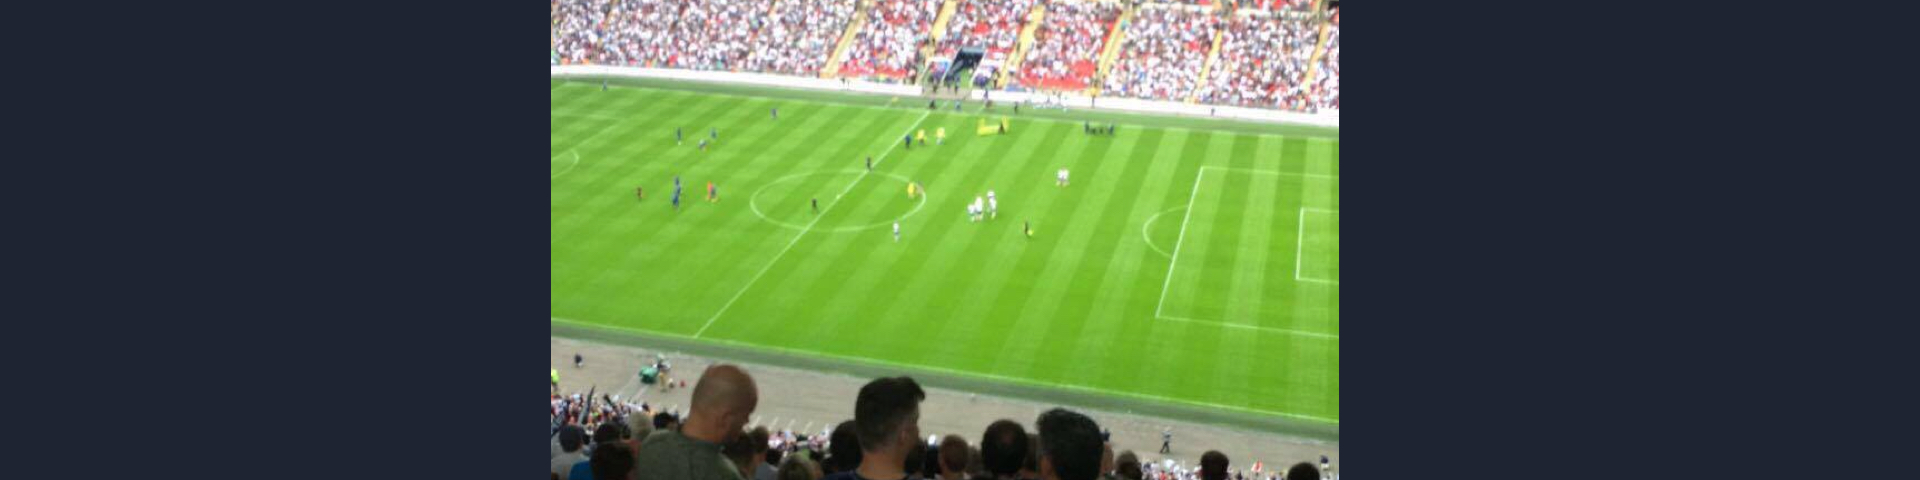 Premier League Football At Wembley Off To A Flier